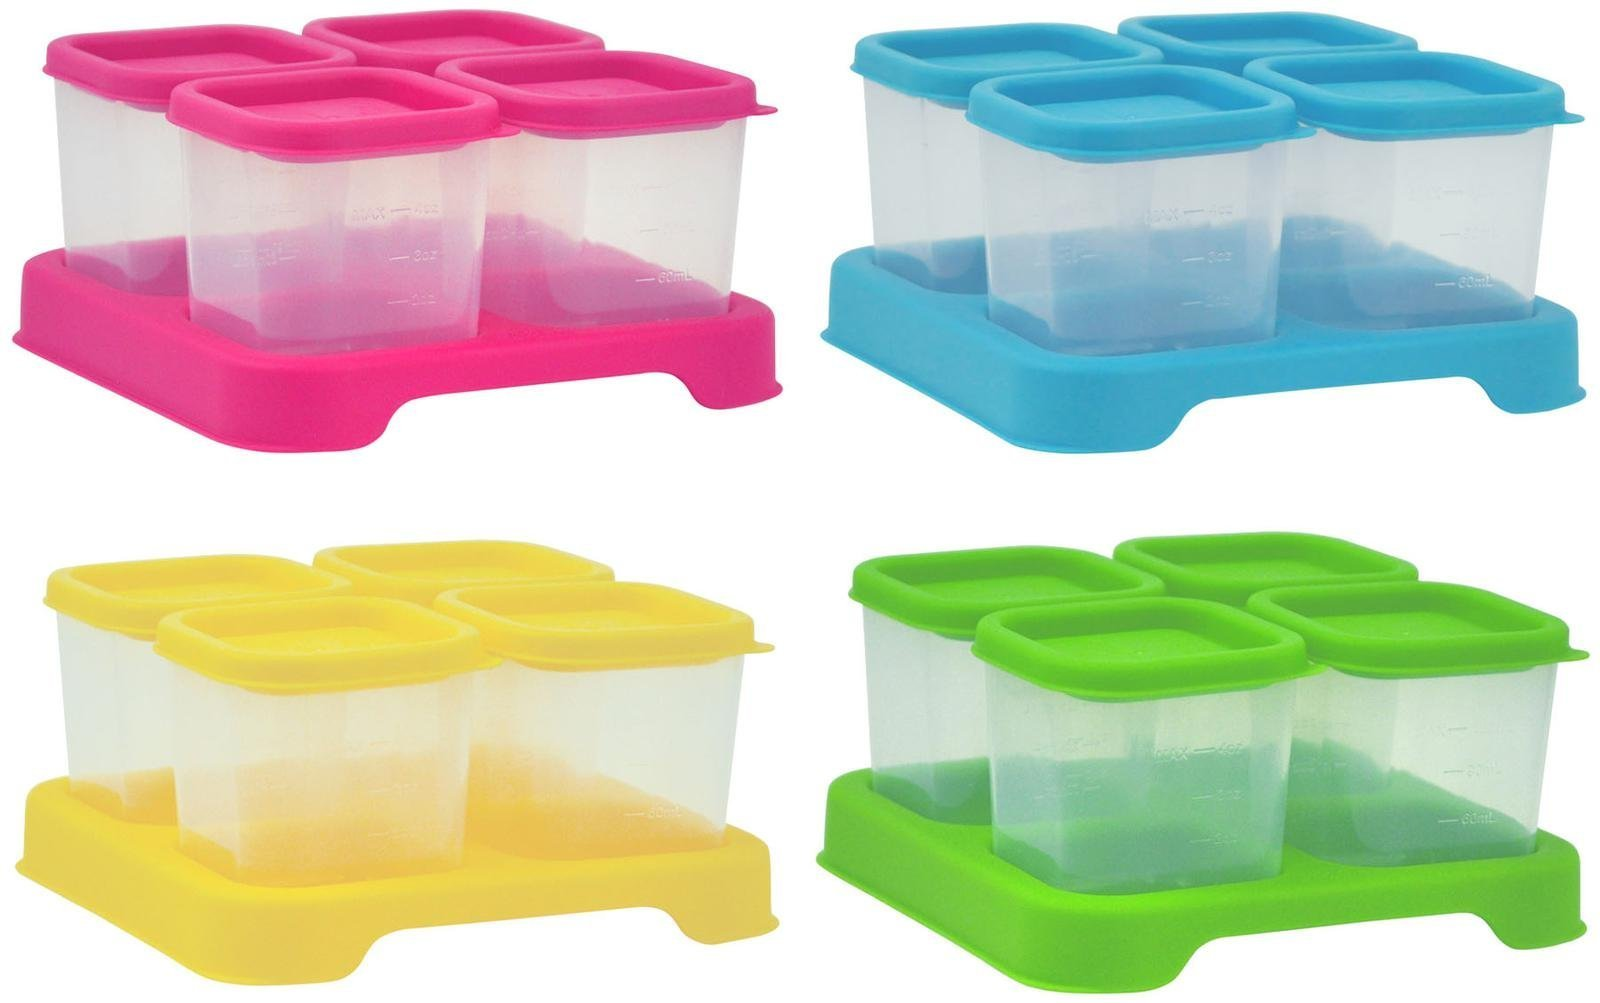 Green Sprouts by i play. Fresh Baby Food Unbreakable Cubes, Multi-Color, 4 Ounce, 4 Pack